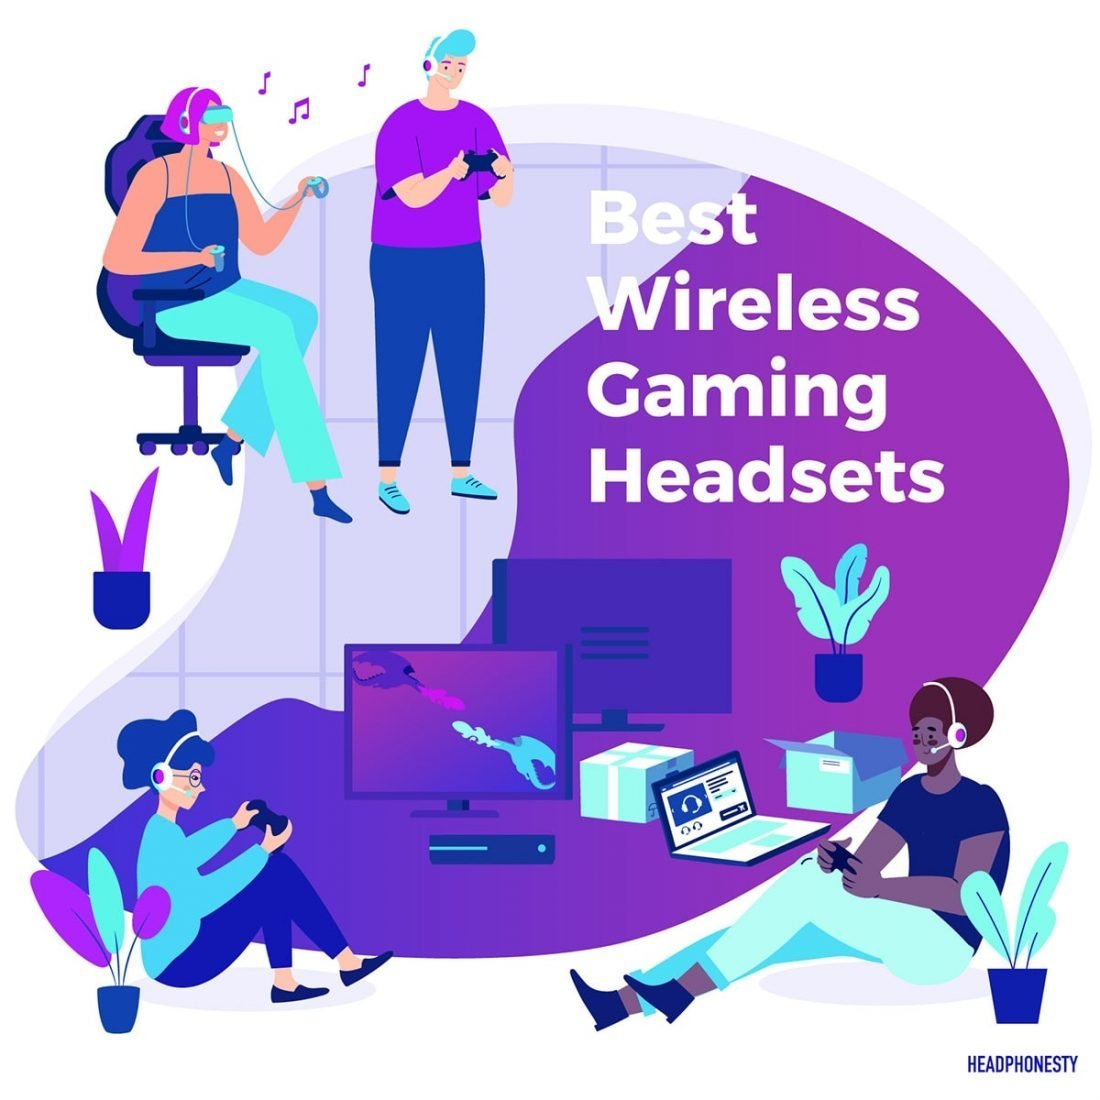 2020 11 Best Wireless Gaming Headsets For Pc Ps4 Xbox One Headphonesty